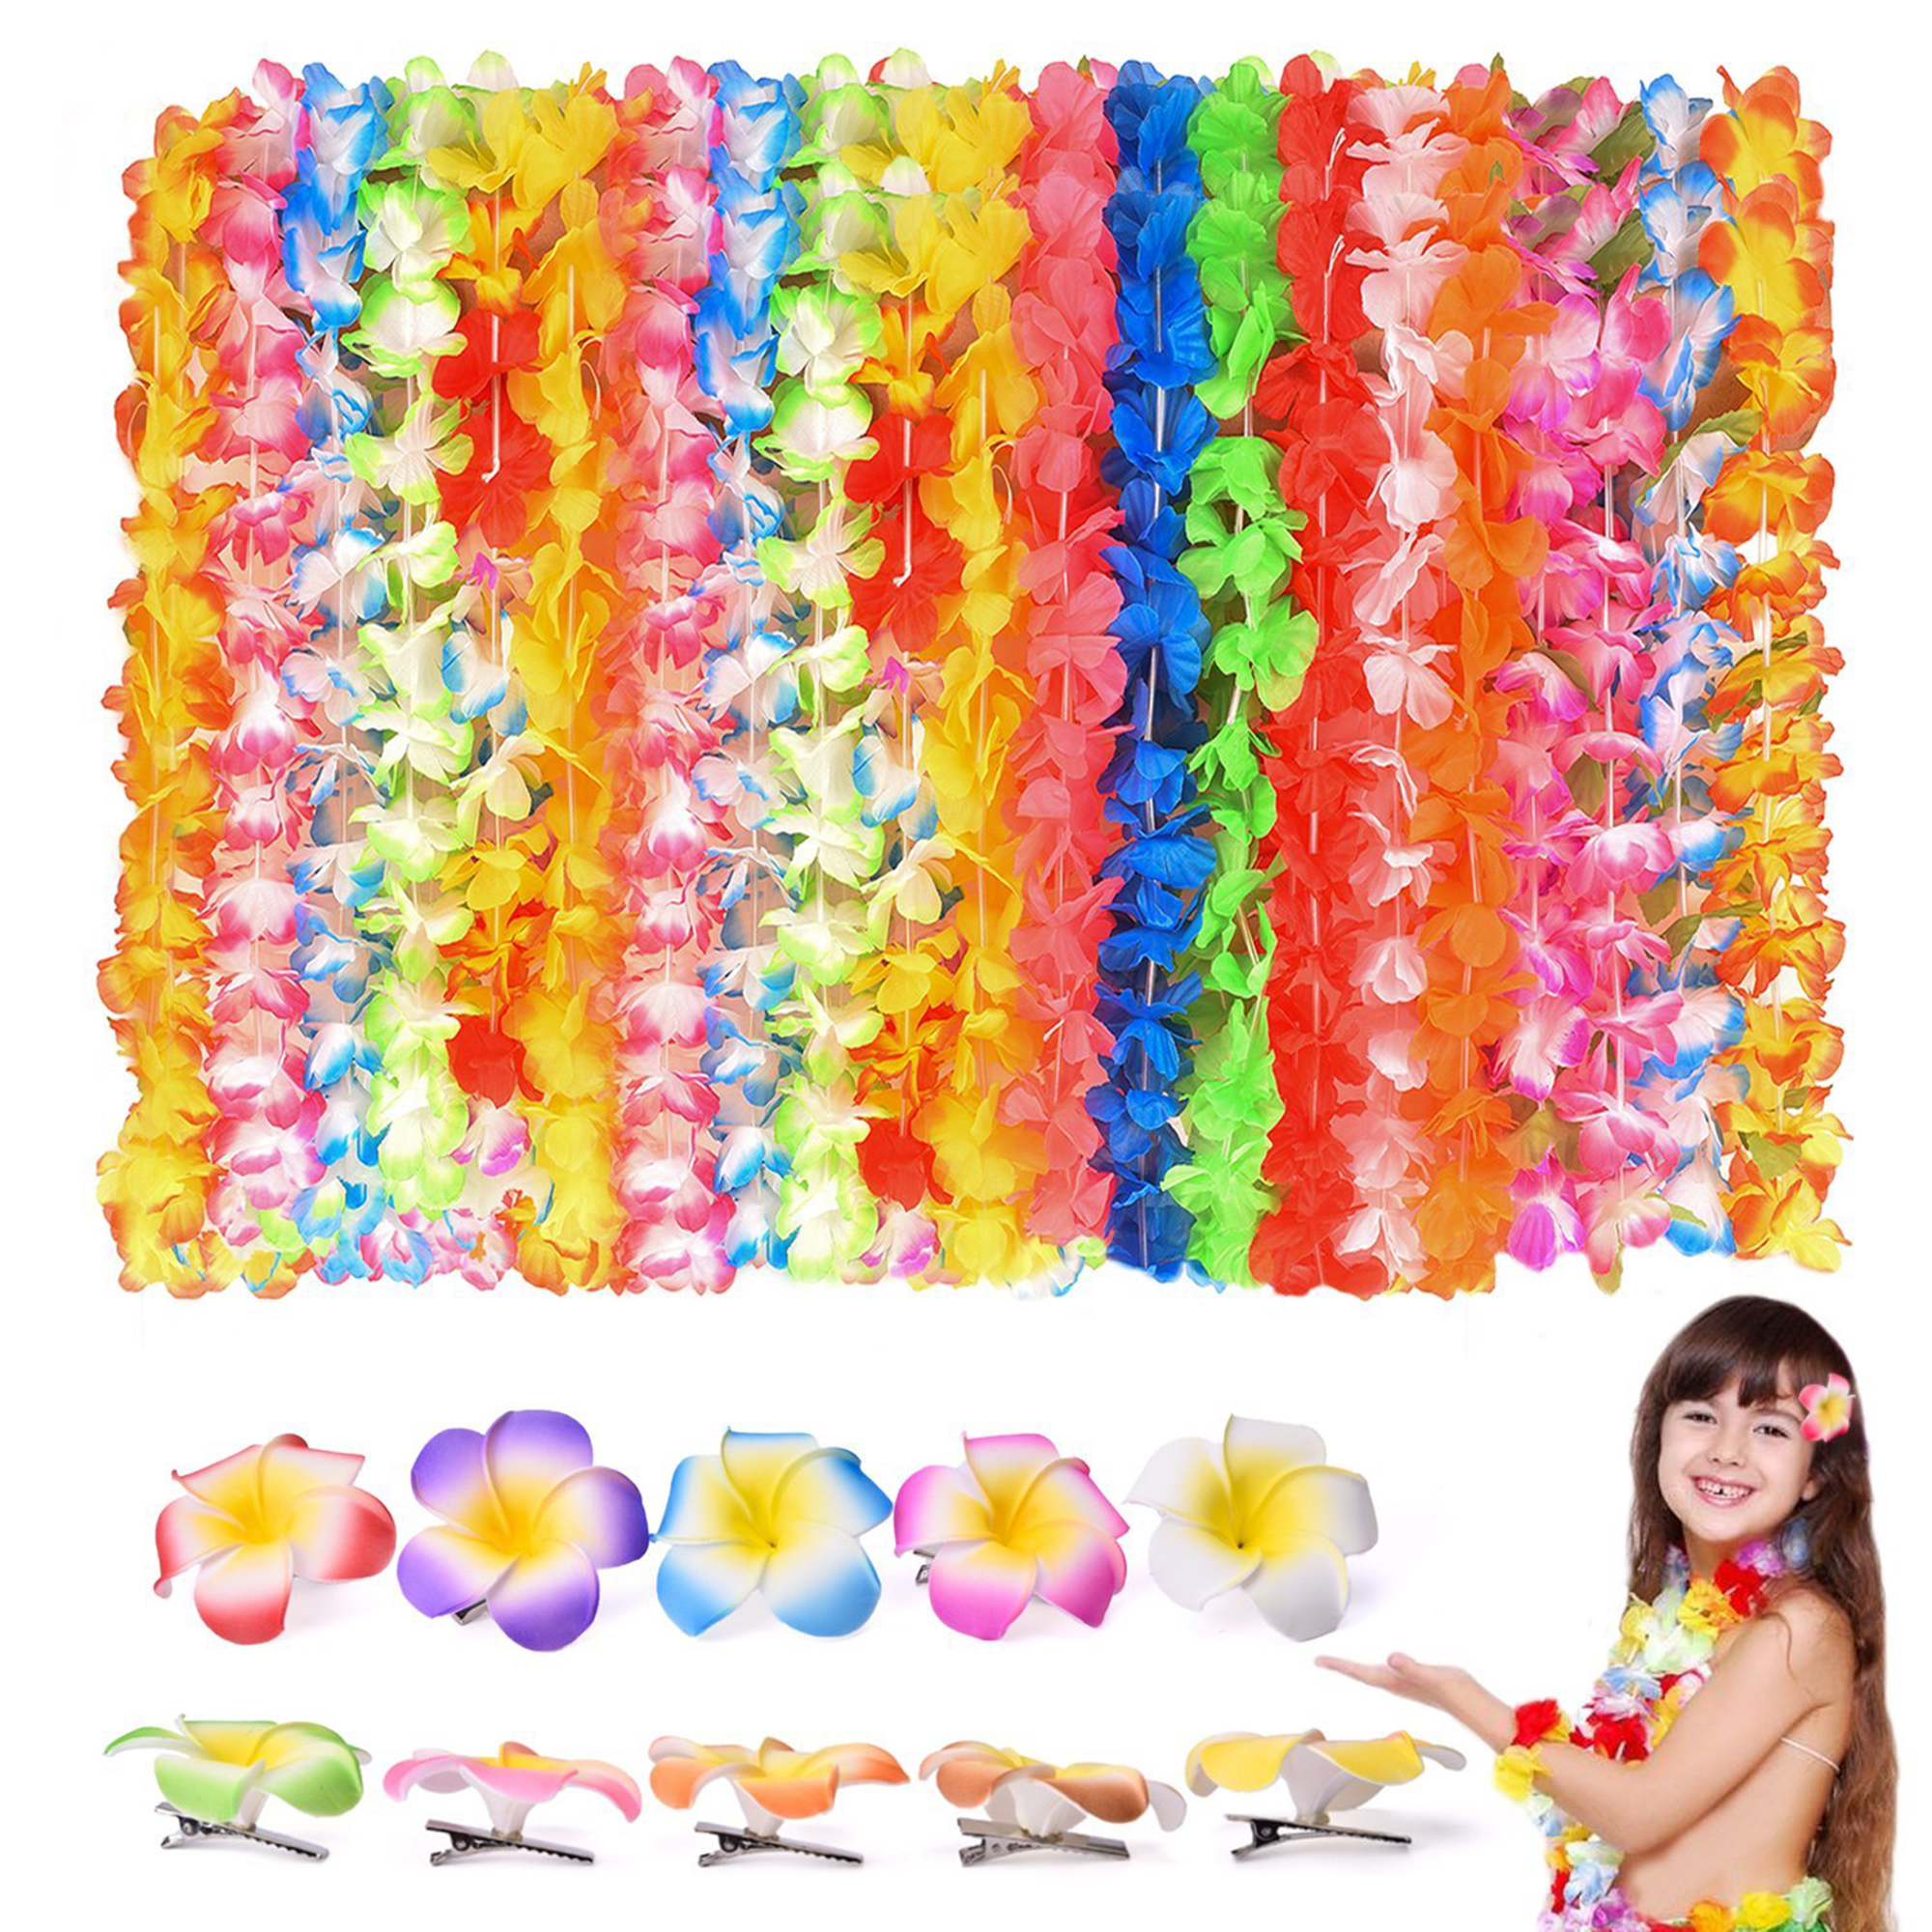 40 PCs Tropical Hawaiian Leis Ruffled Flowers Necklaces Luau Party Supplies with Flower Lei Hair Clip Beach Party Decorations, Birthday Party Favors F-17